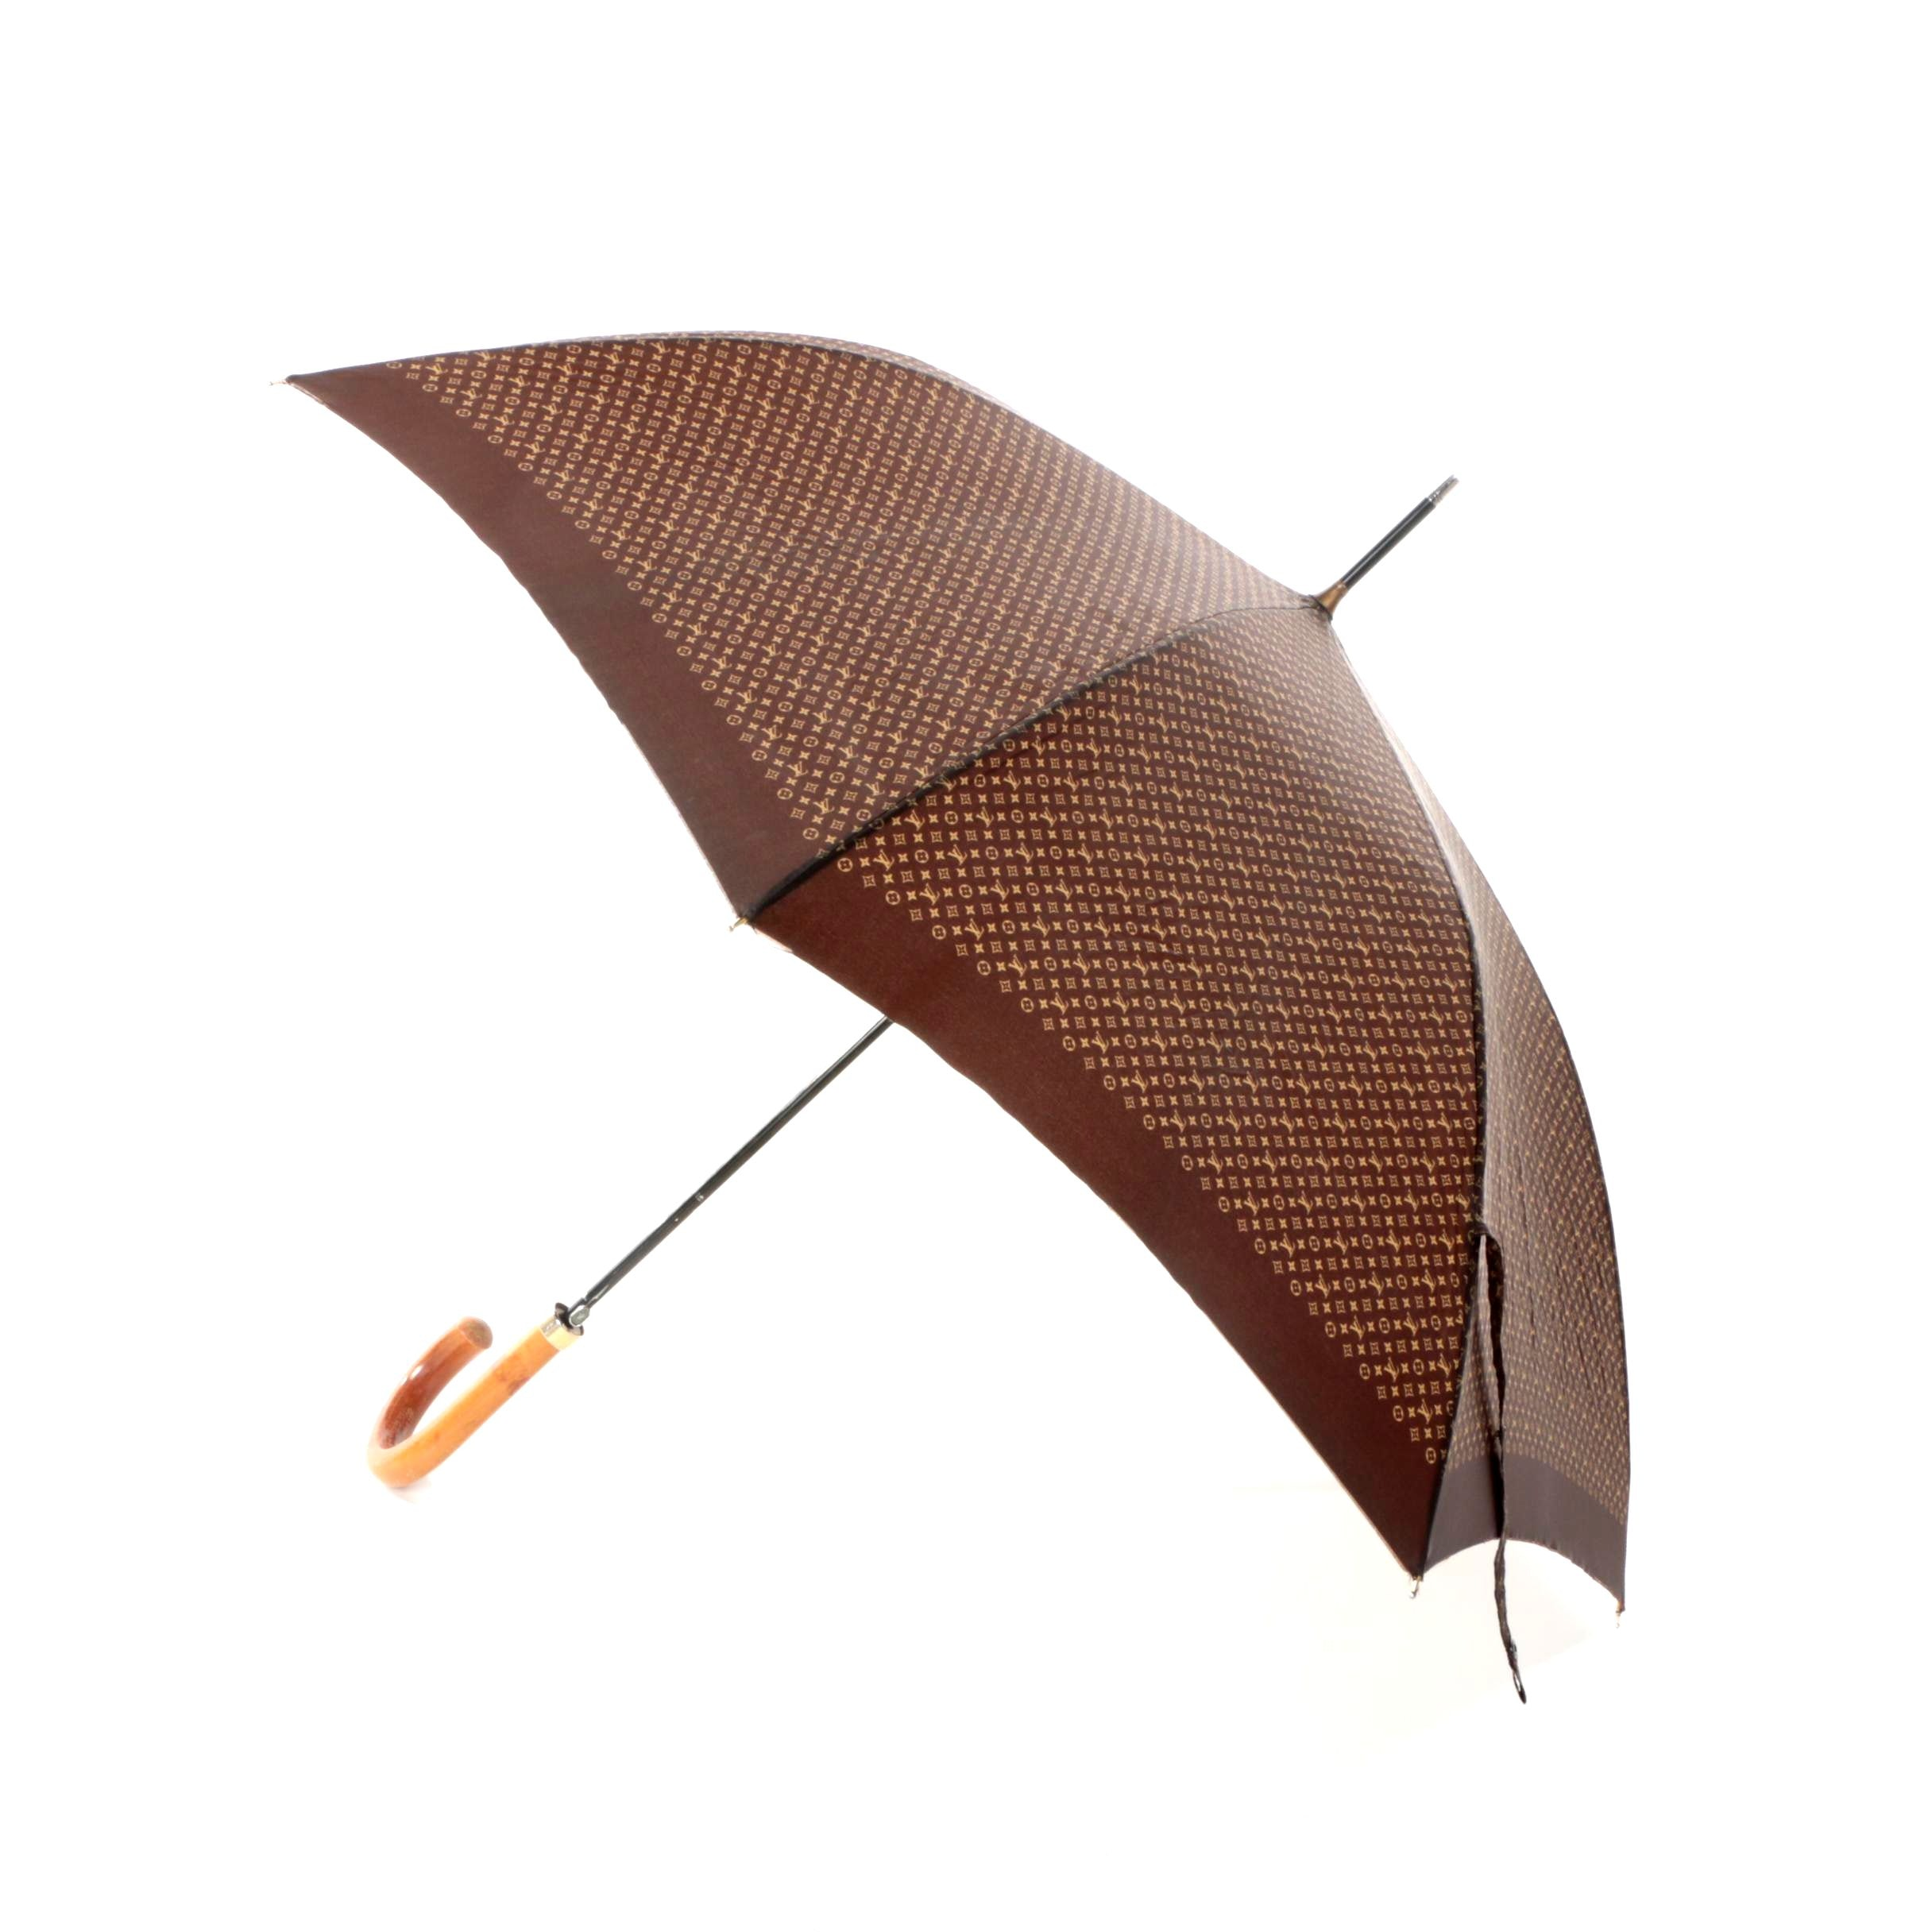 Louis Vuitton Monogram Nylon Umbrella